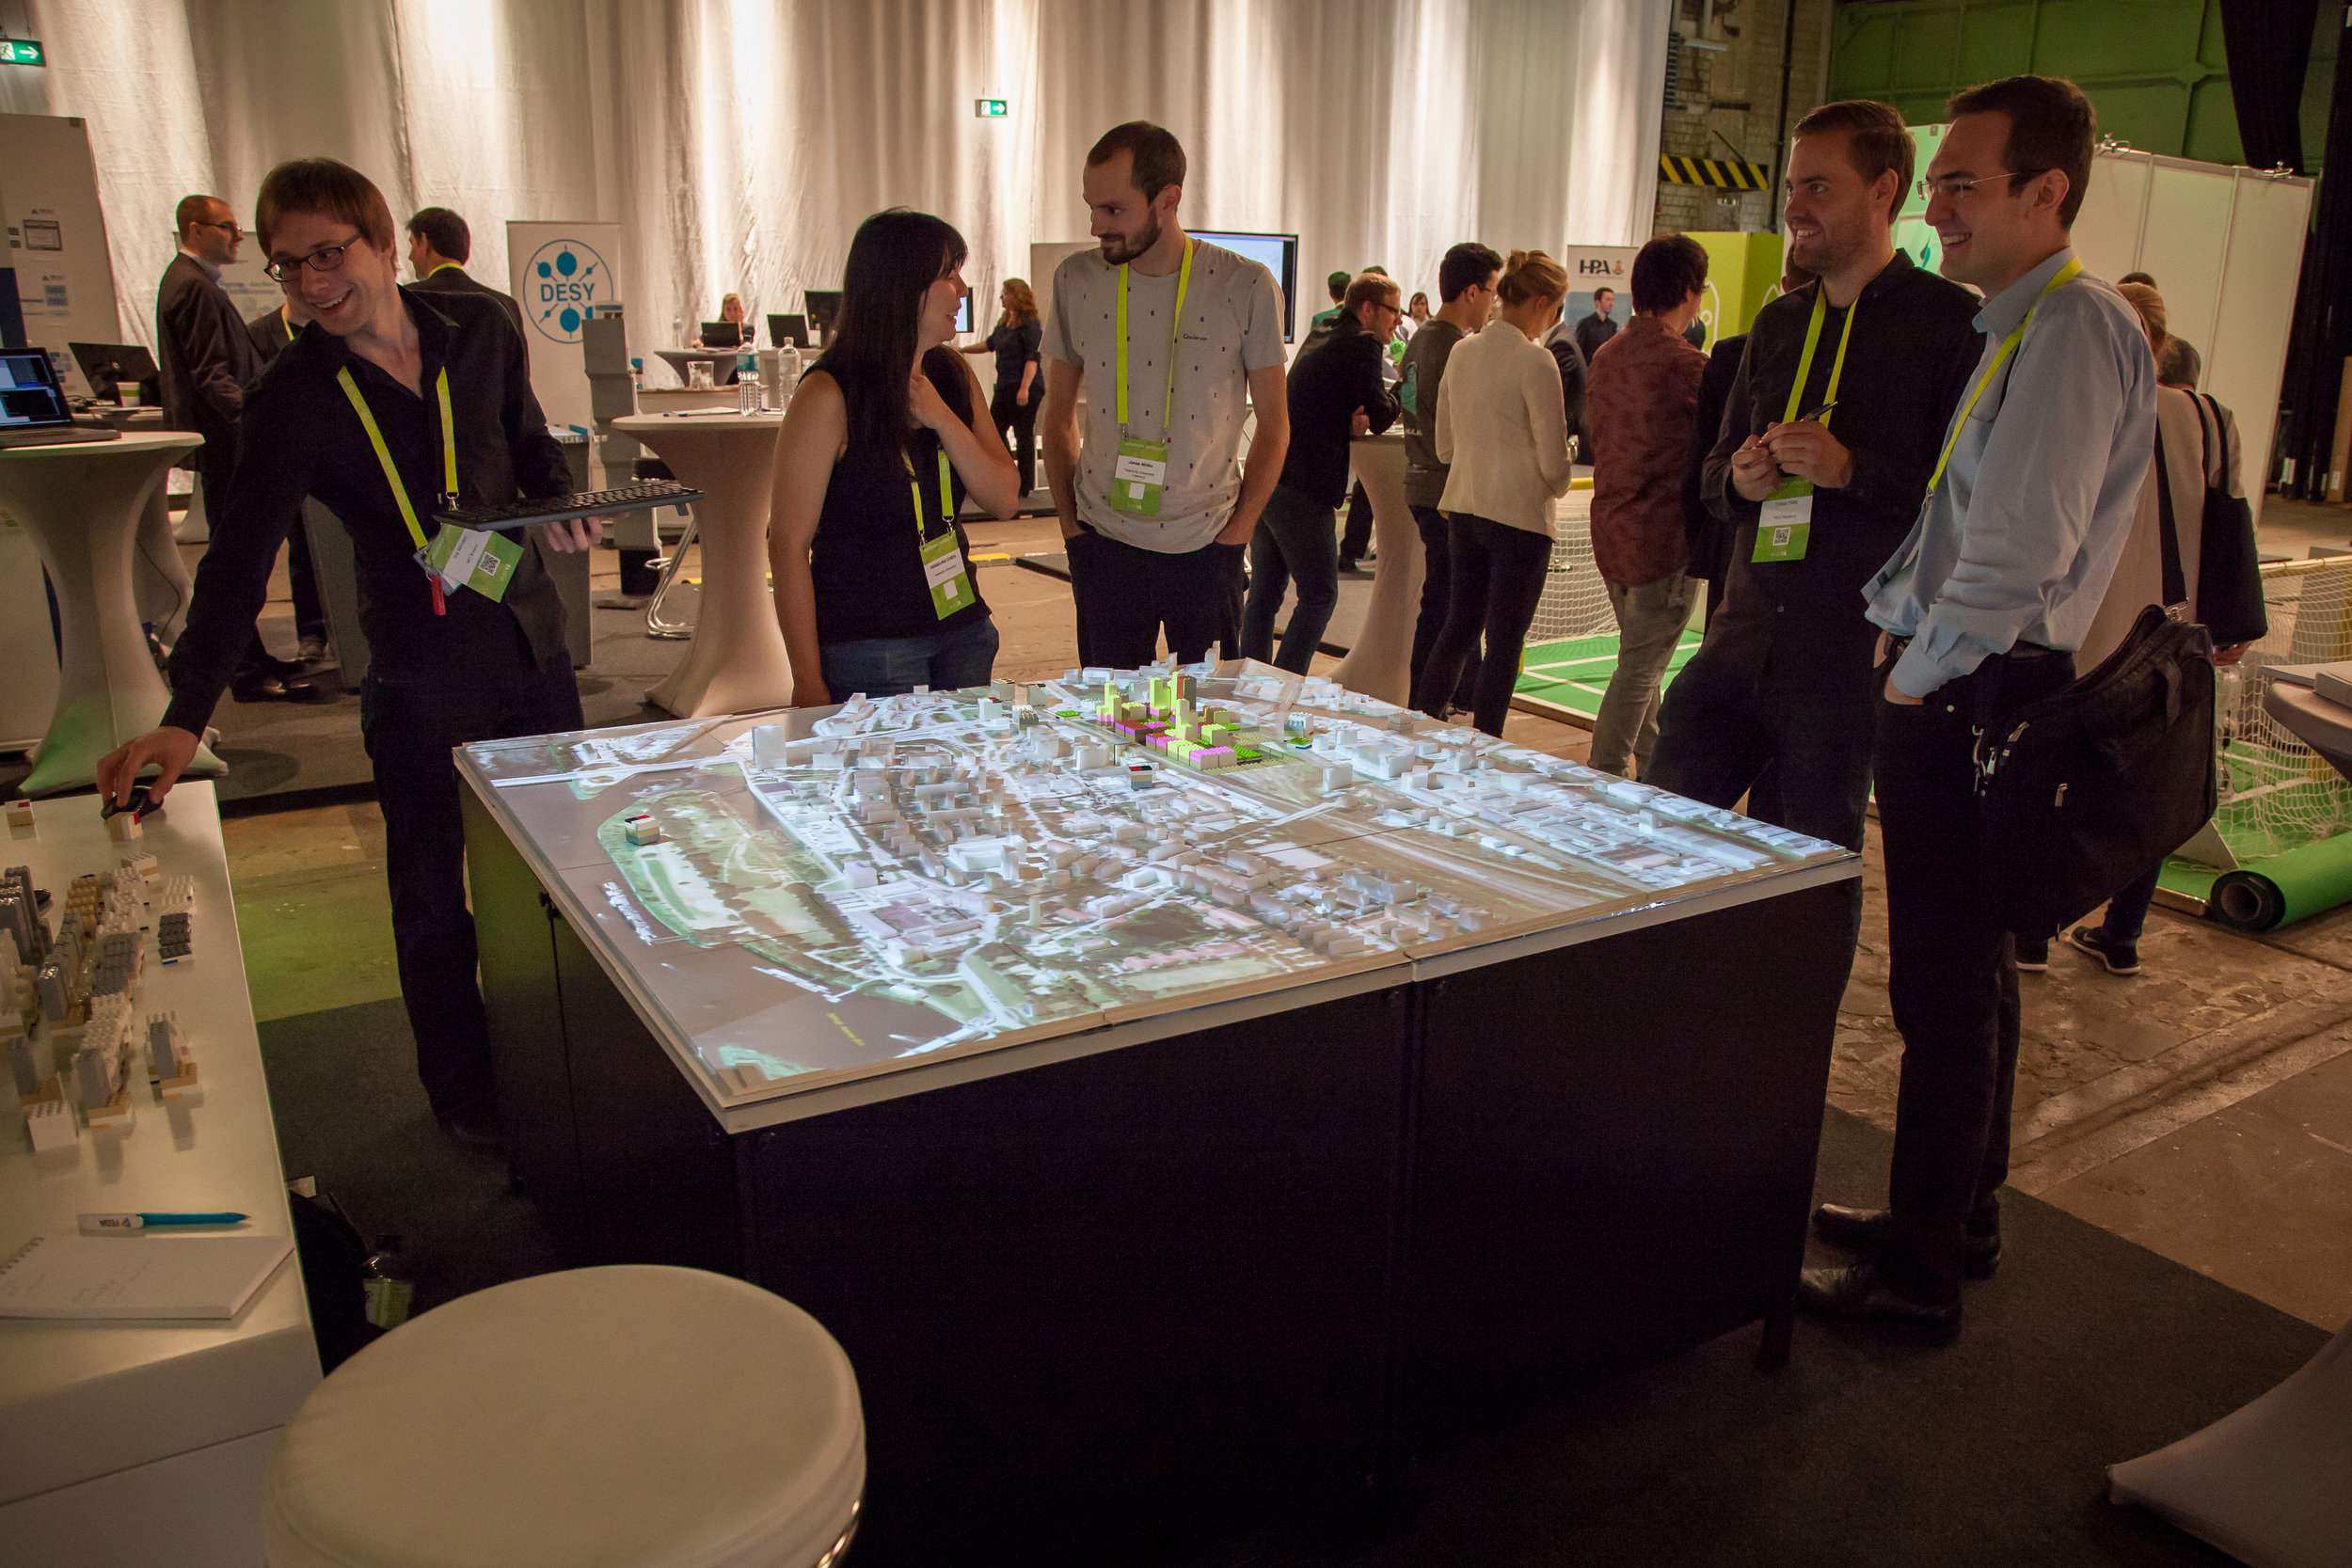 Ira (left) and HCU students present prototype at Hamburg solutions conference. september, 2015. Photo by Benno Tobler Ziemer.